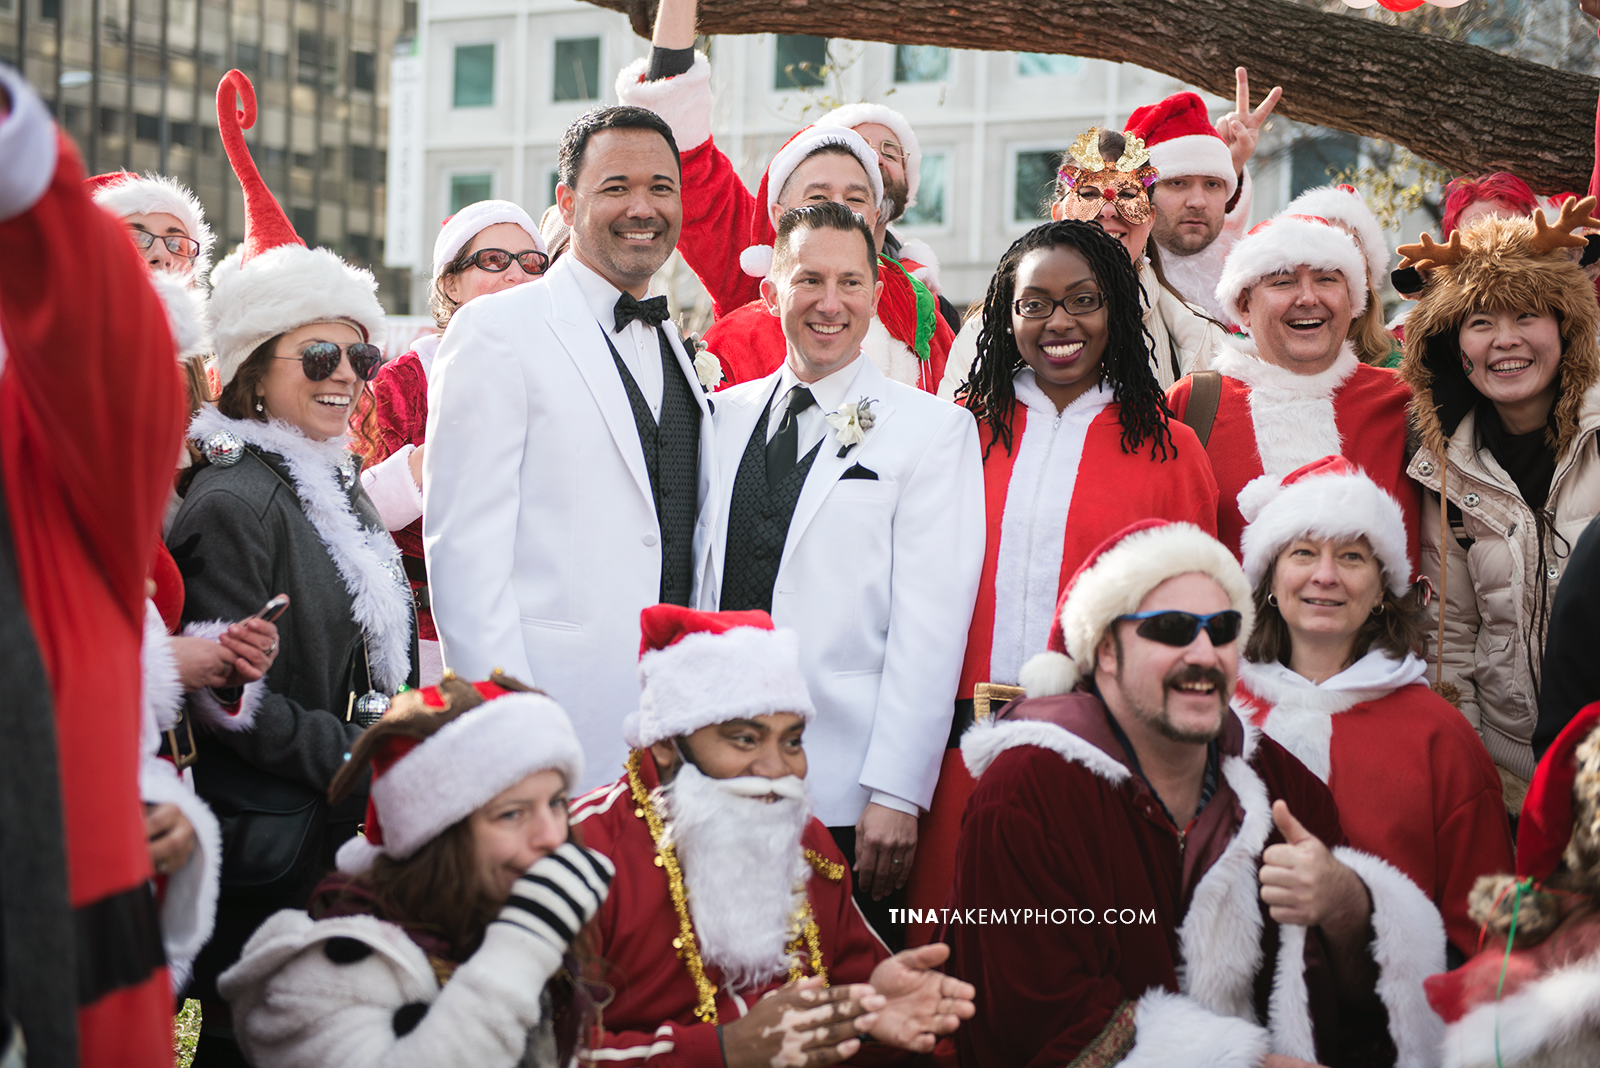 45-Washington-DC-Virginia-Gay-Same-Sex-Wedding-Men-12-13-14-Santarchy-Photographer-Santa-Christmas-Photo-Bomb